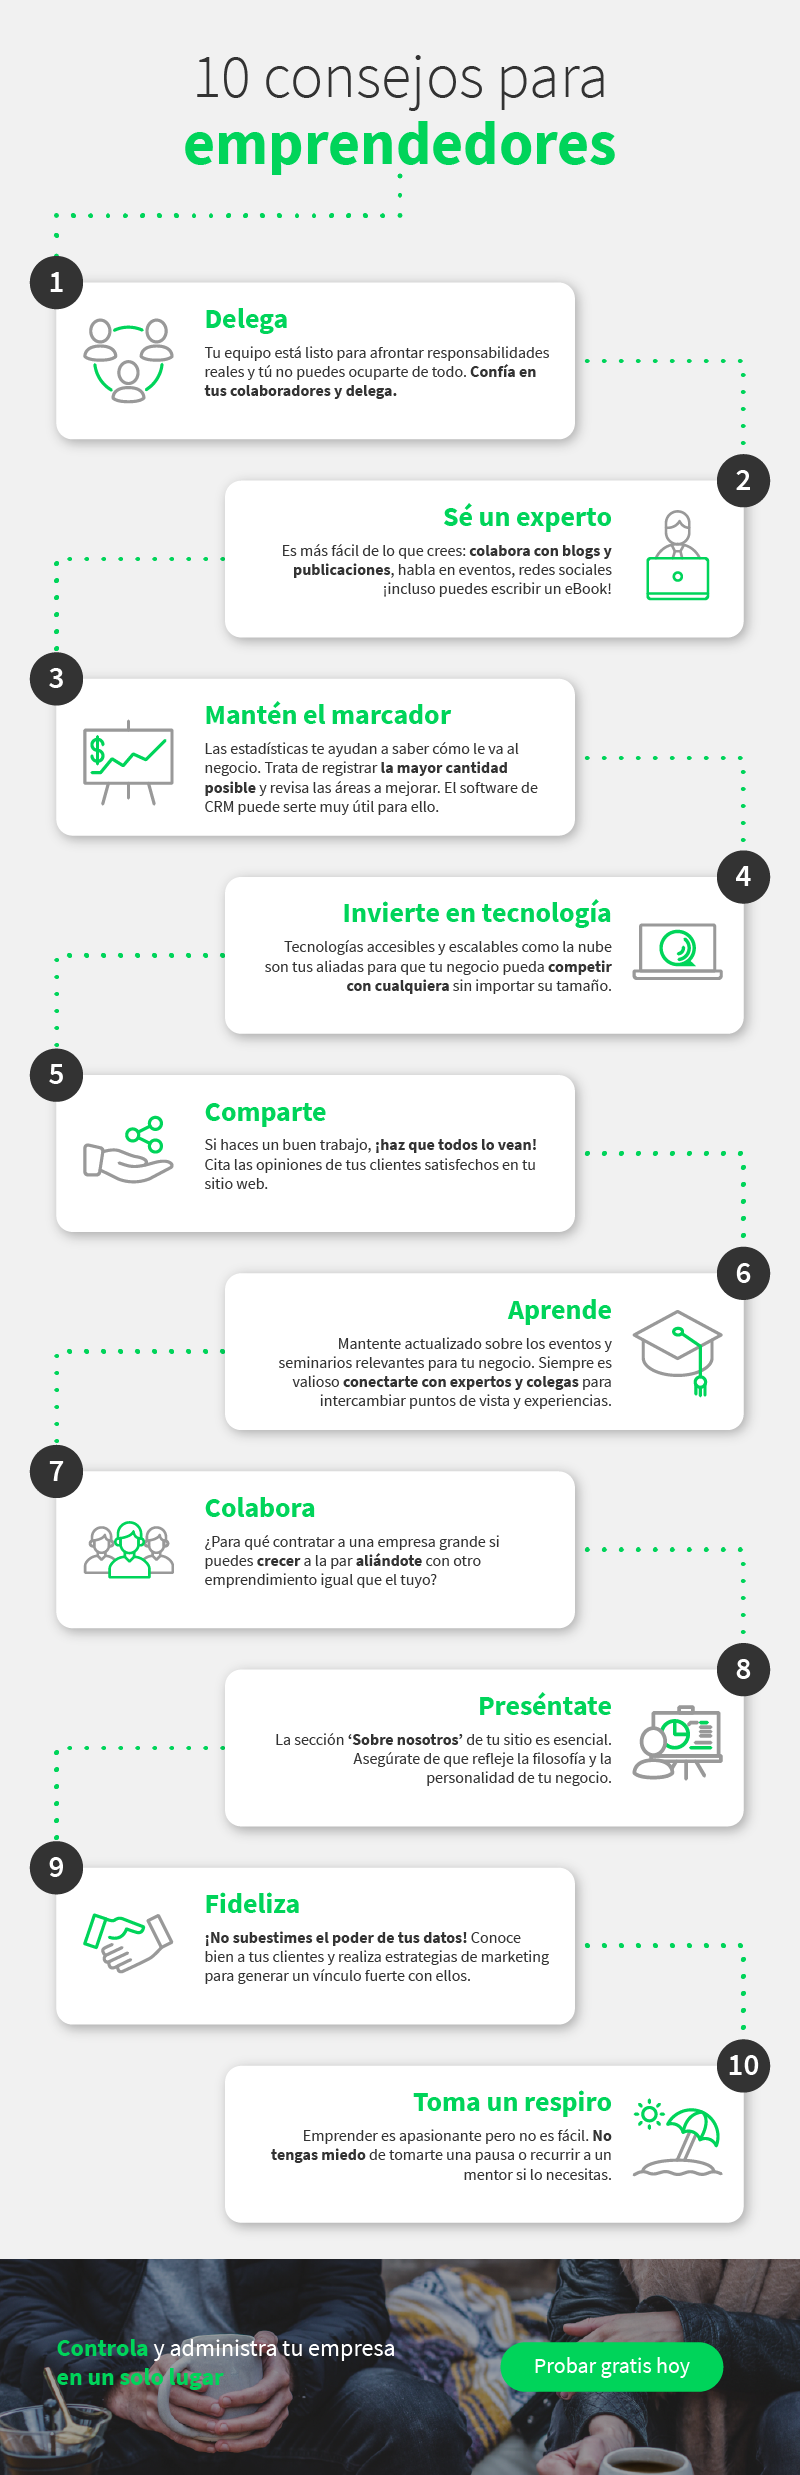 Infografico_10consejos-01.png